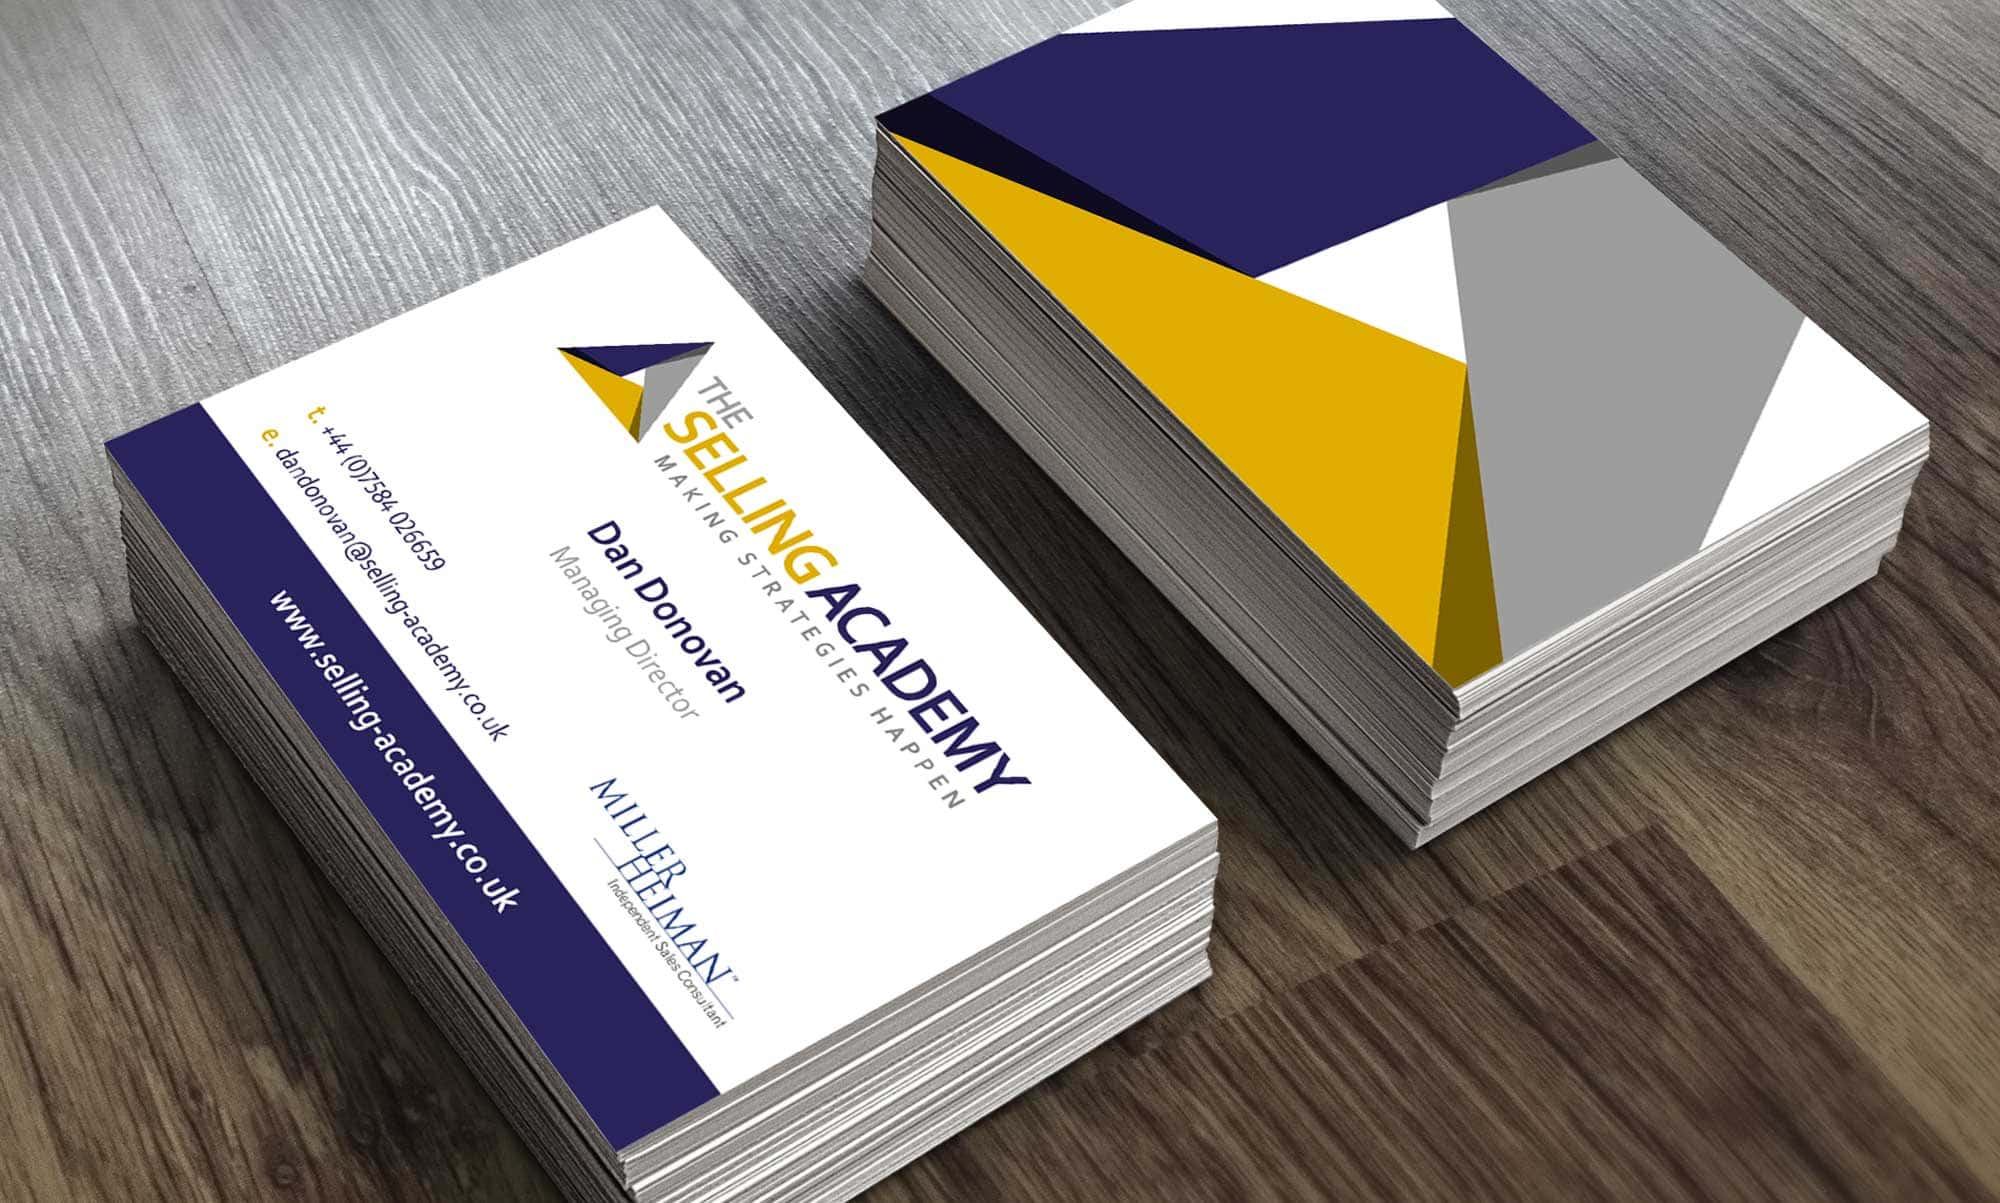 The Selling Academy branding